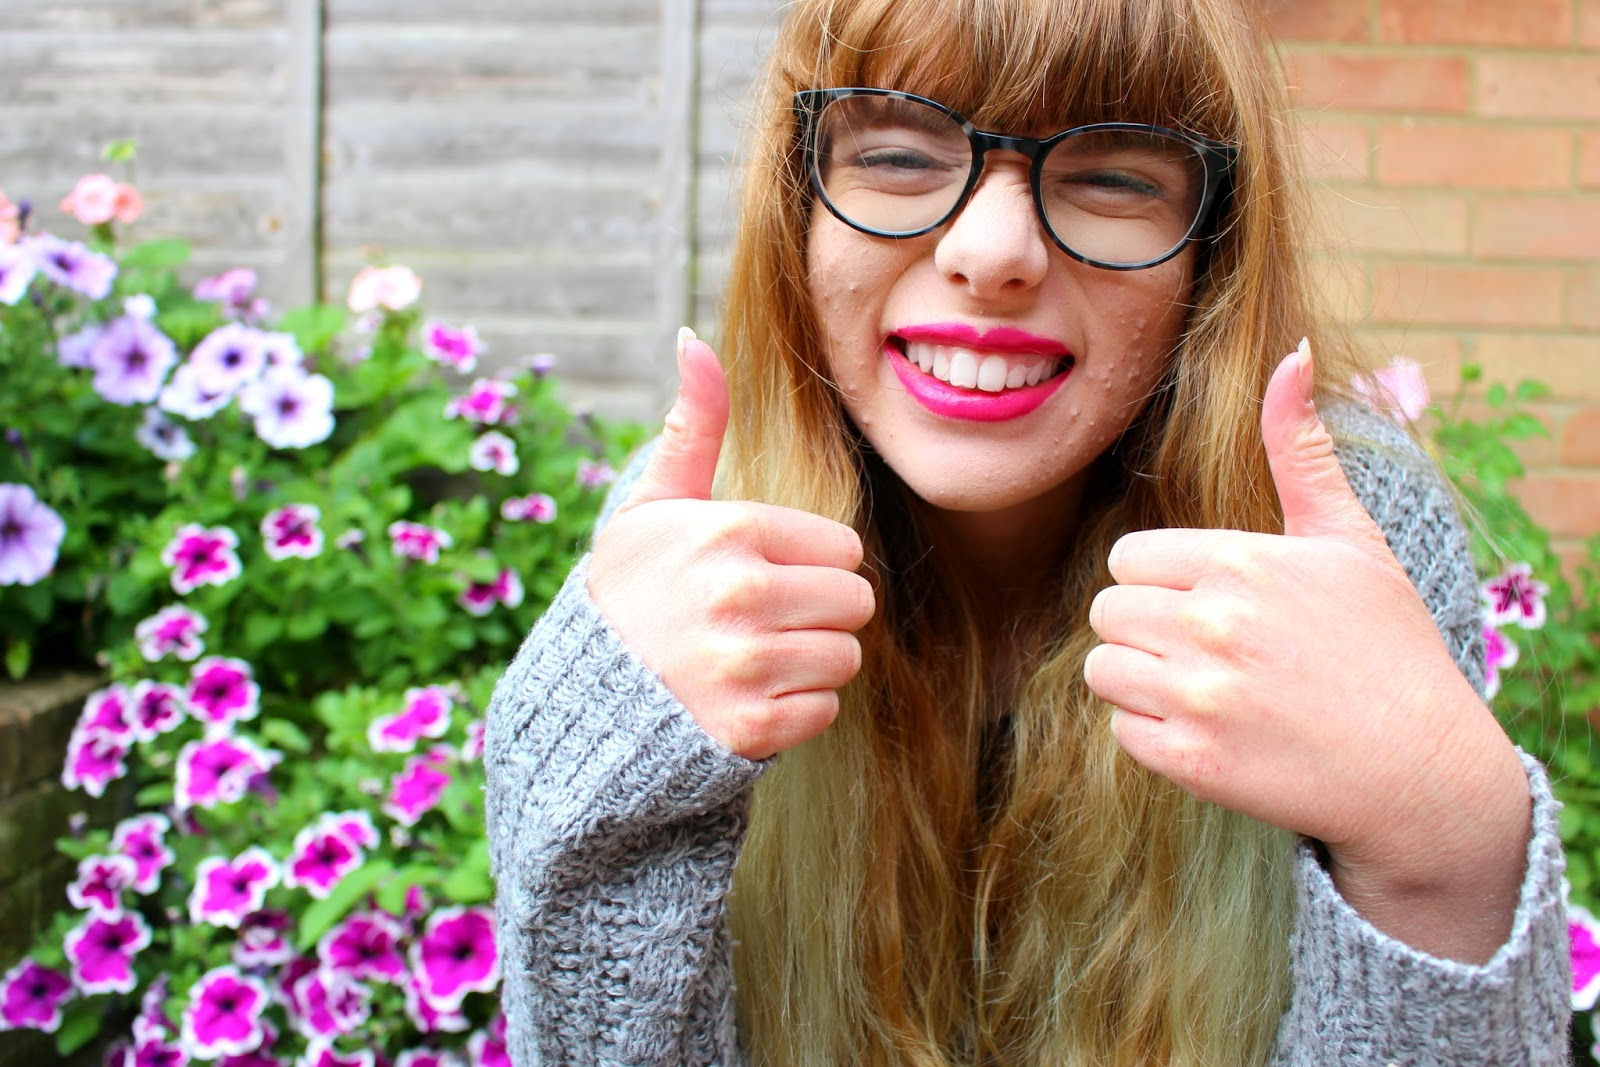 What It Feels Like To Be An Outsider buzzfeed introvert UK lifestyle blogger